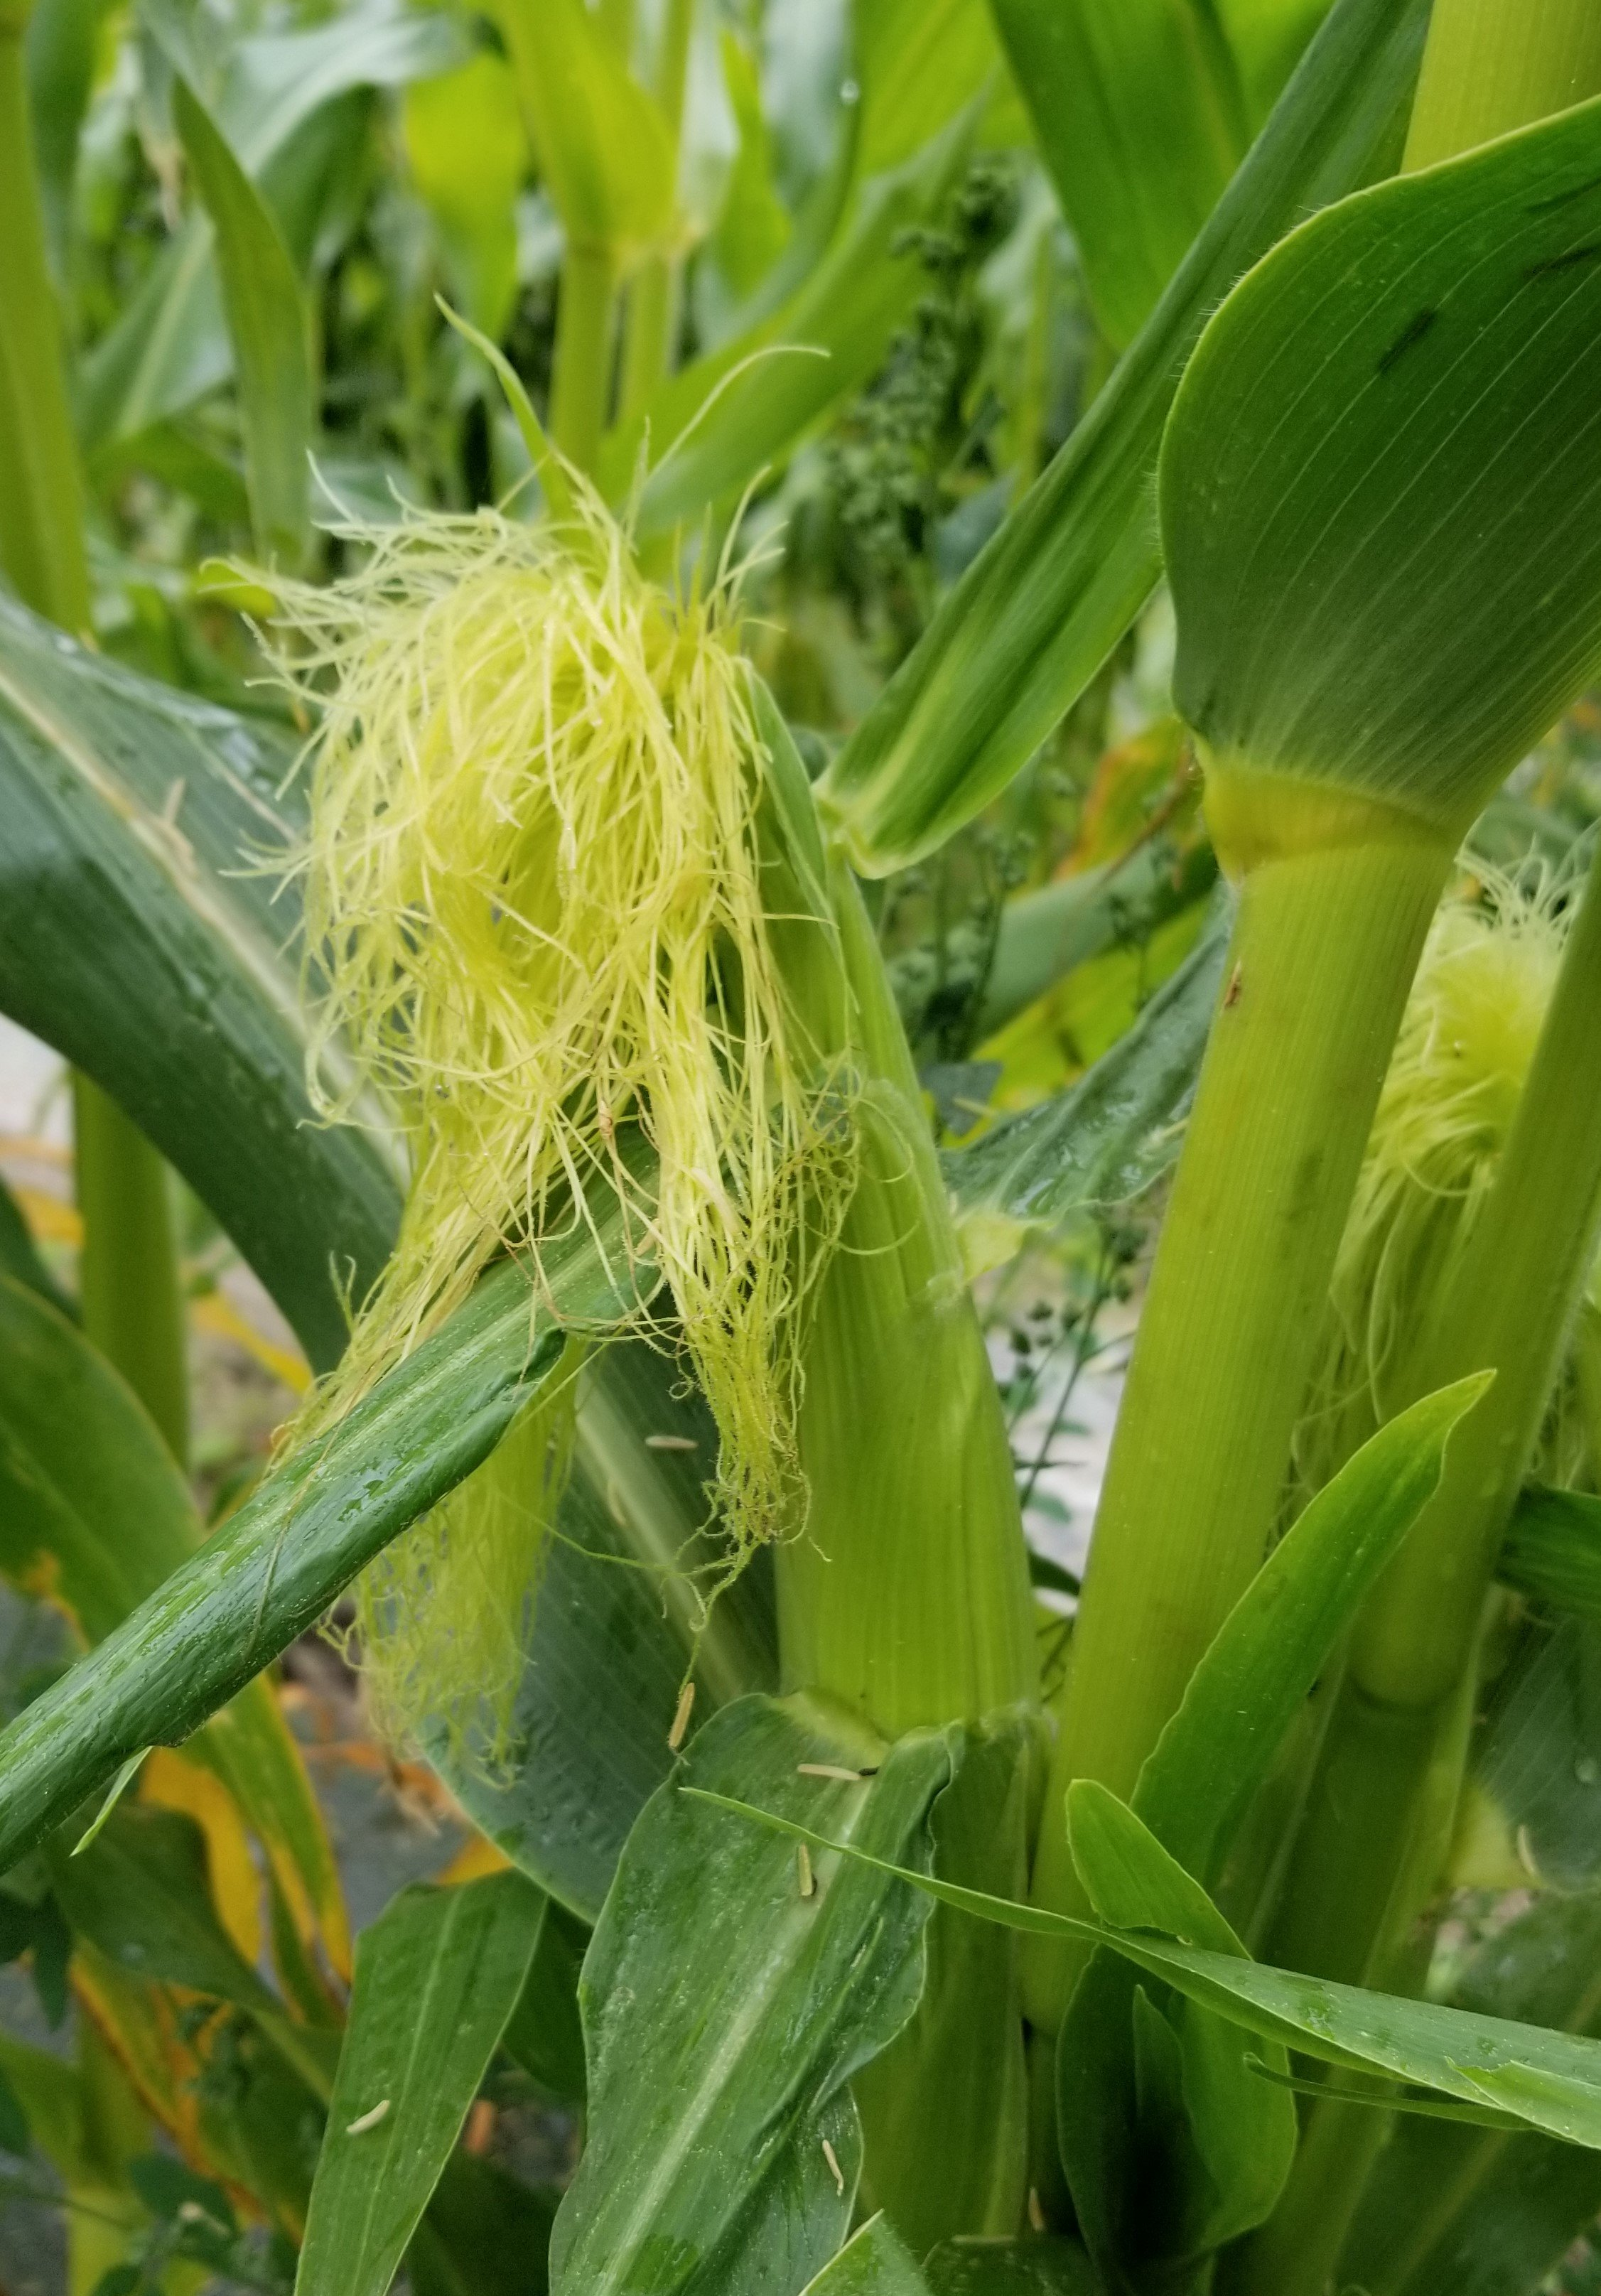 Corn slowly coming